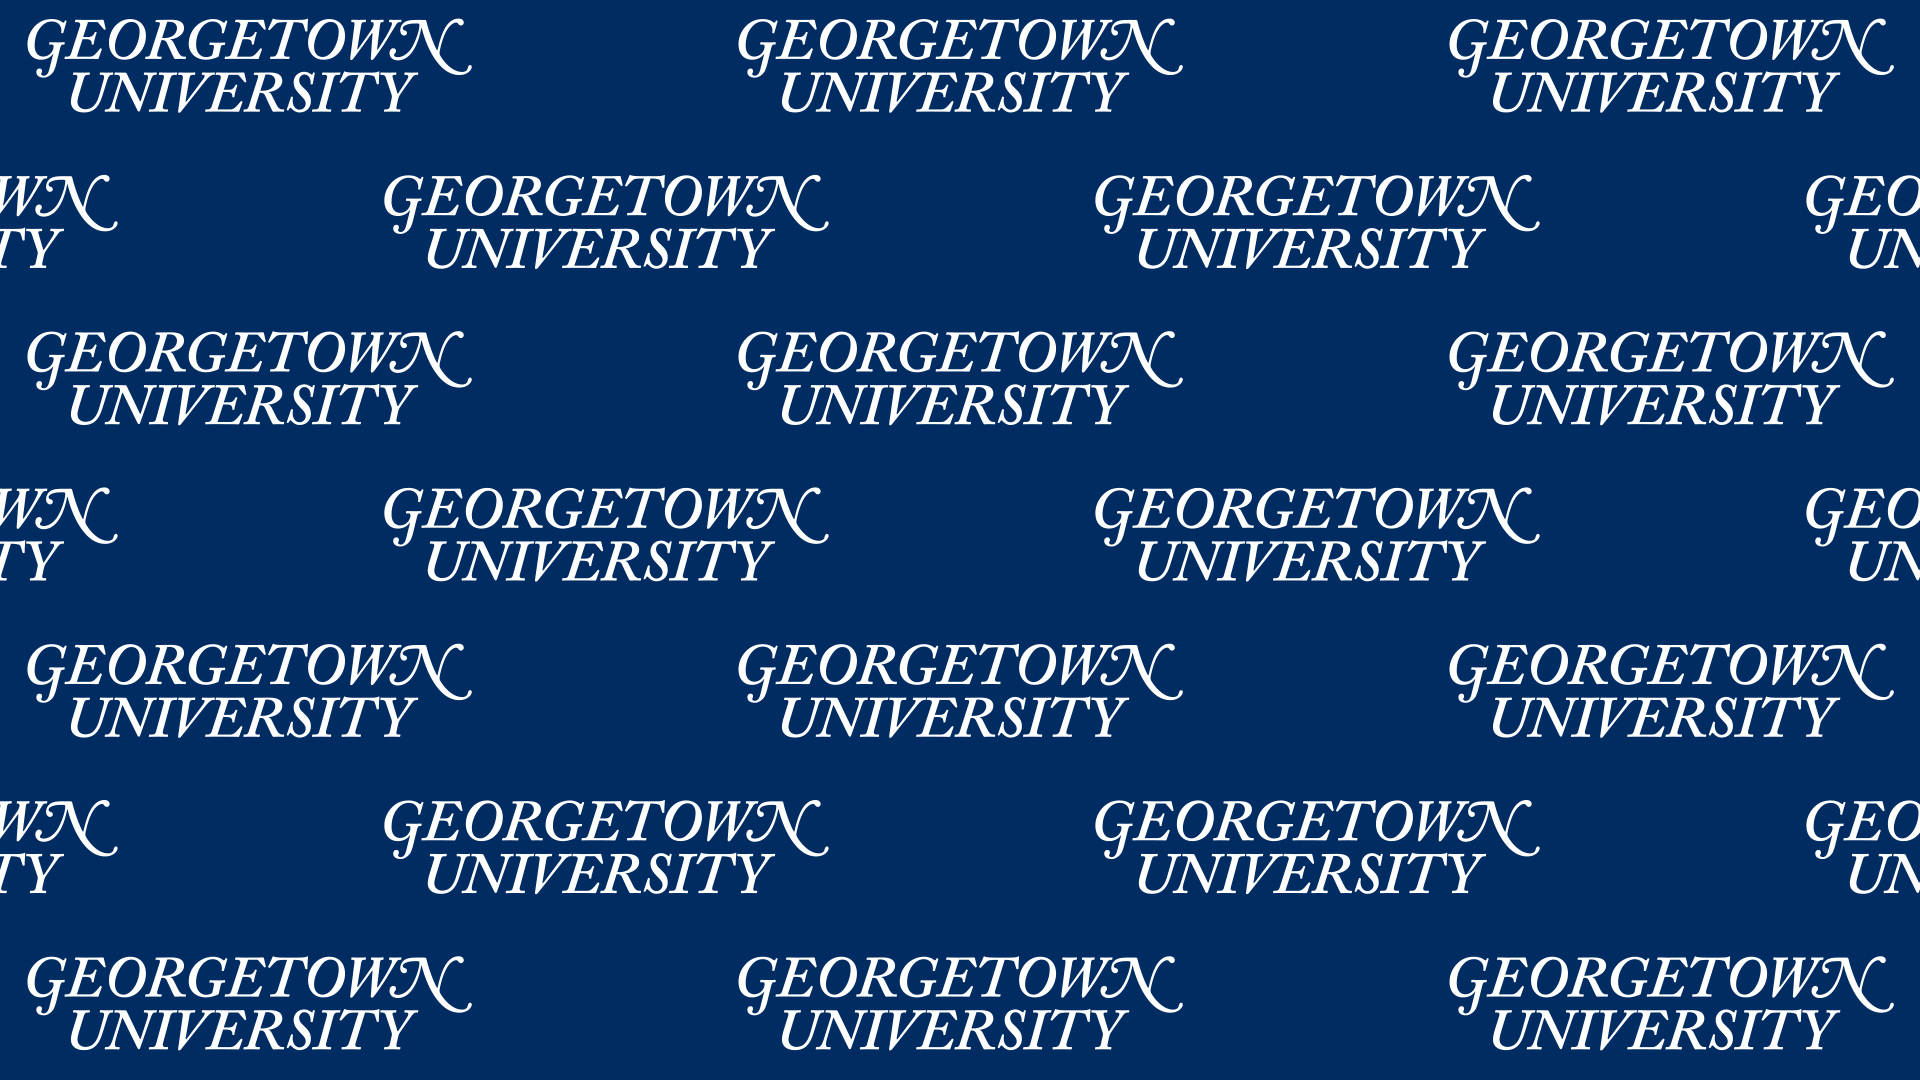 Georgetown University official name in white repeated on a blue background.